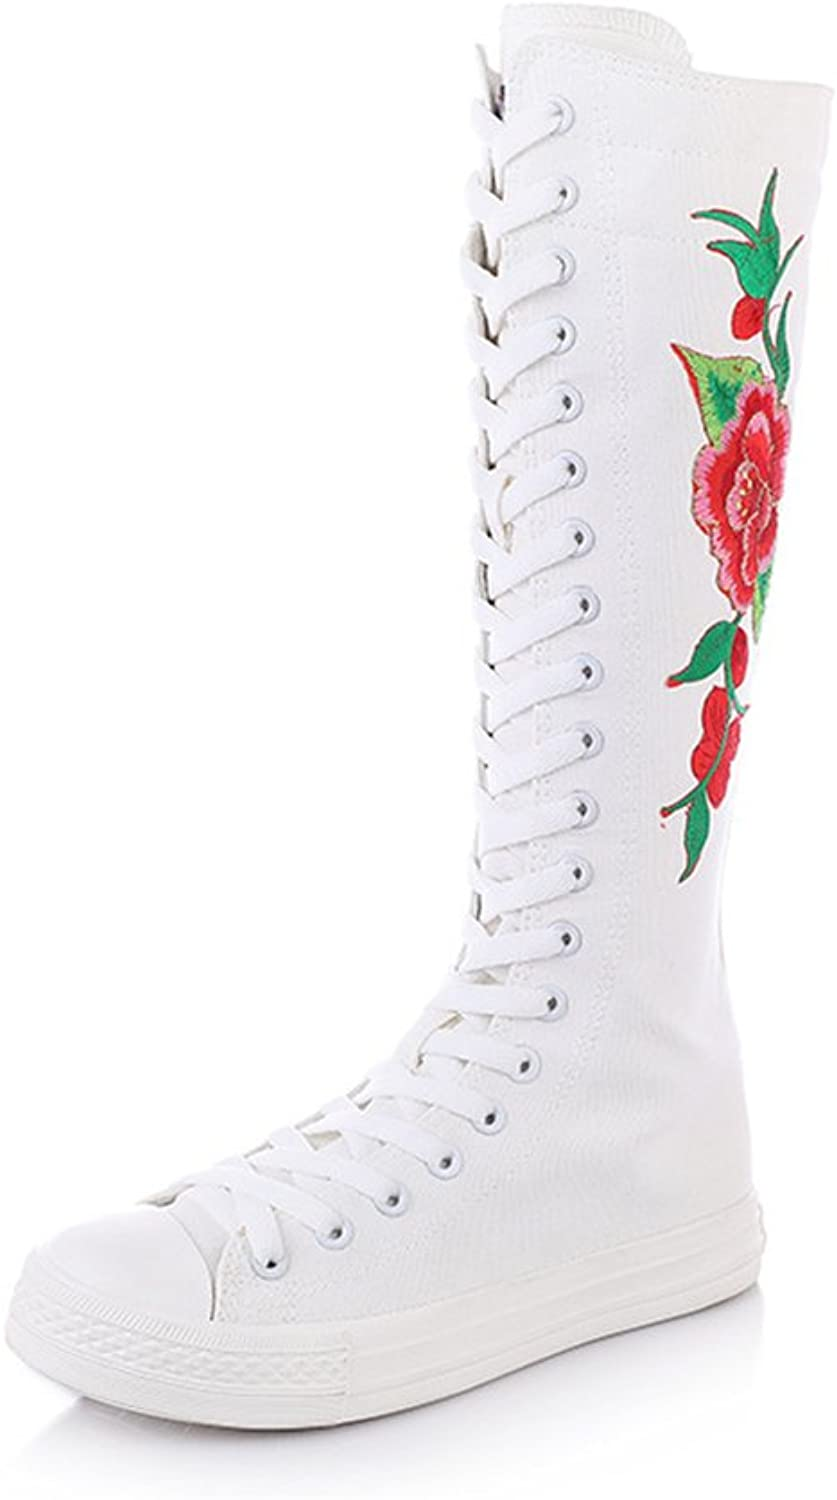 AGoGo Floral Embroidered Dance Sneakers High Top Canvas shoes for Women & Girls